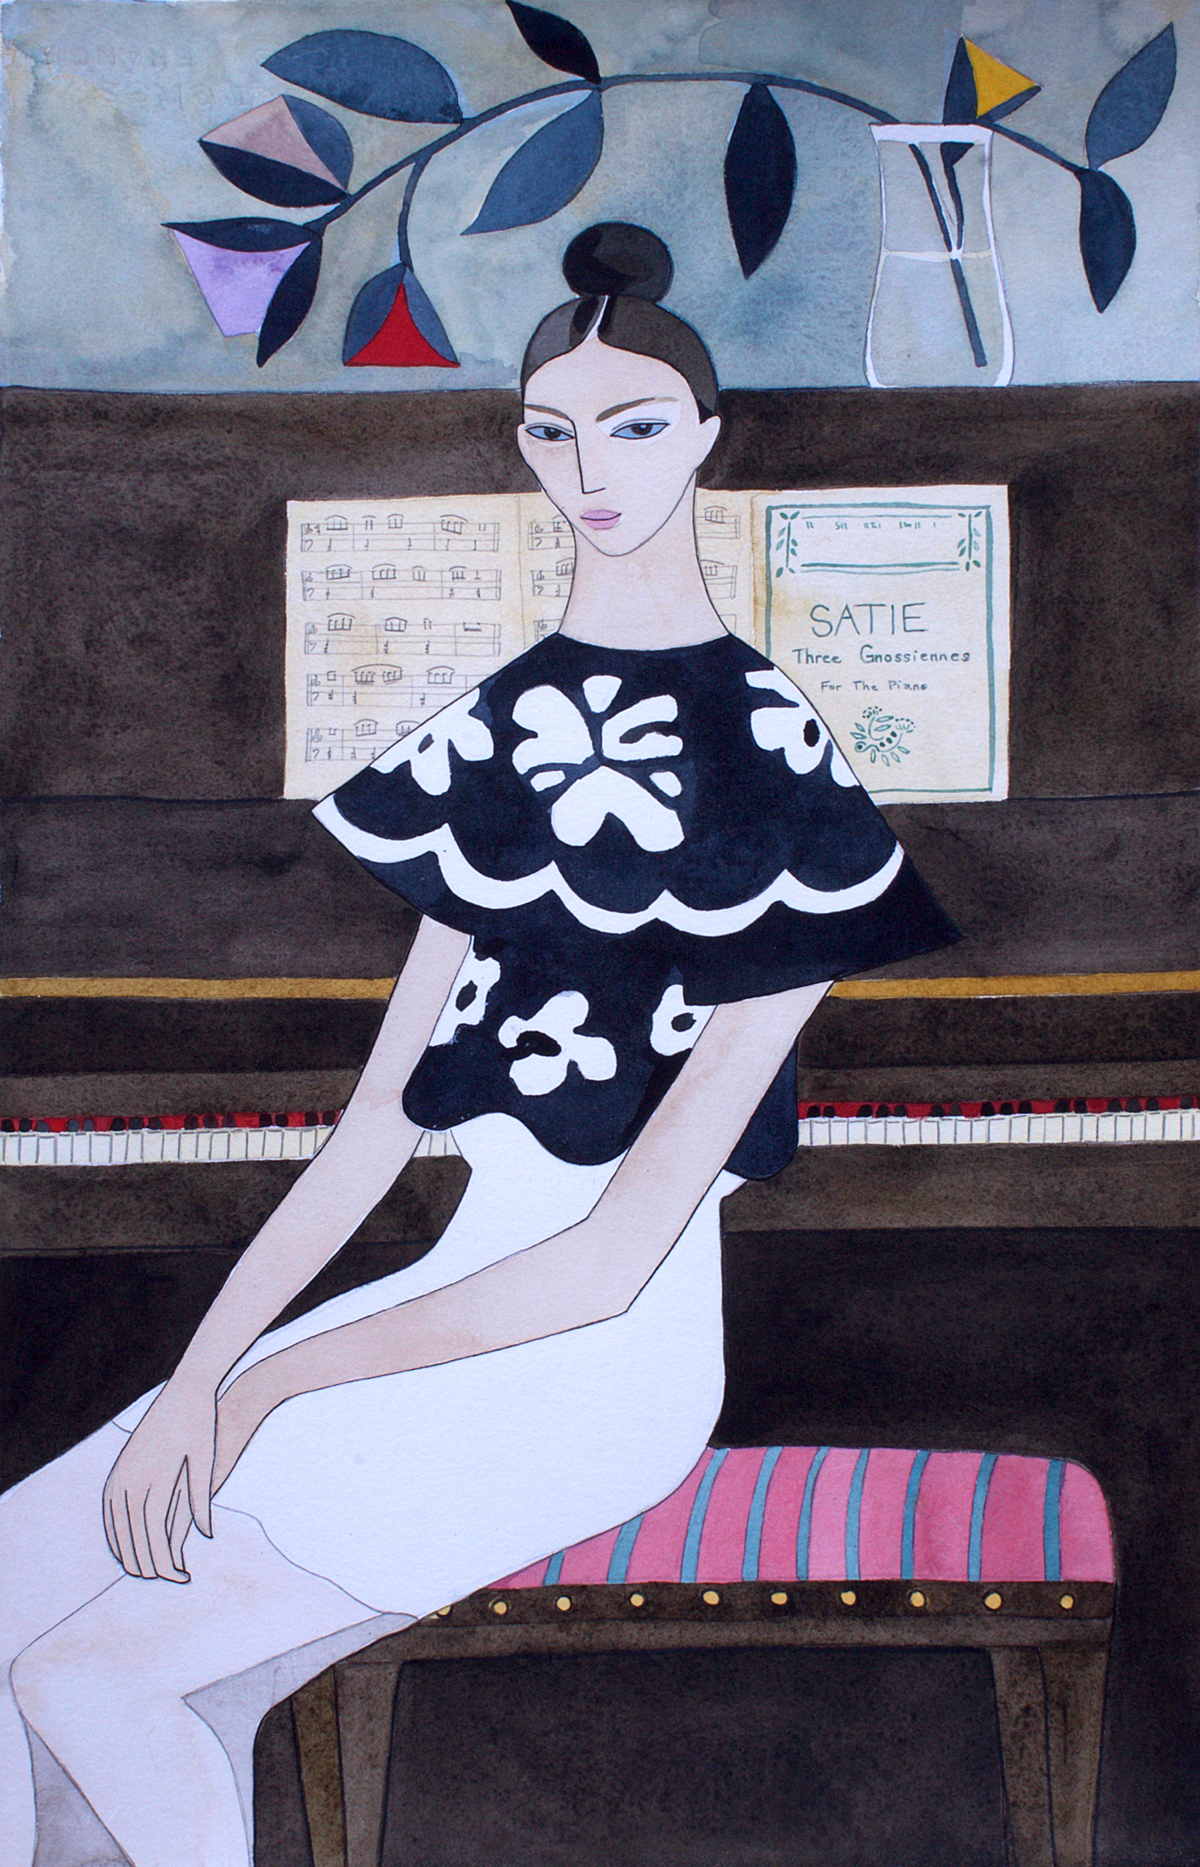 DIOR SS16 Watercolours — Girl at the Piano    (playing Satie),14 x 23 inches   © Kelly Beeman